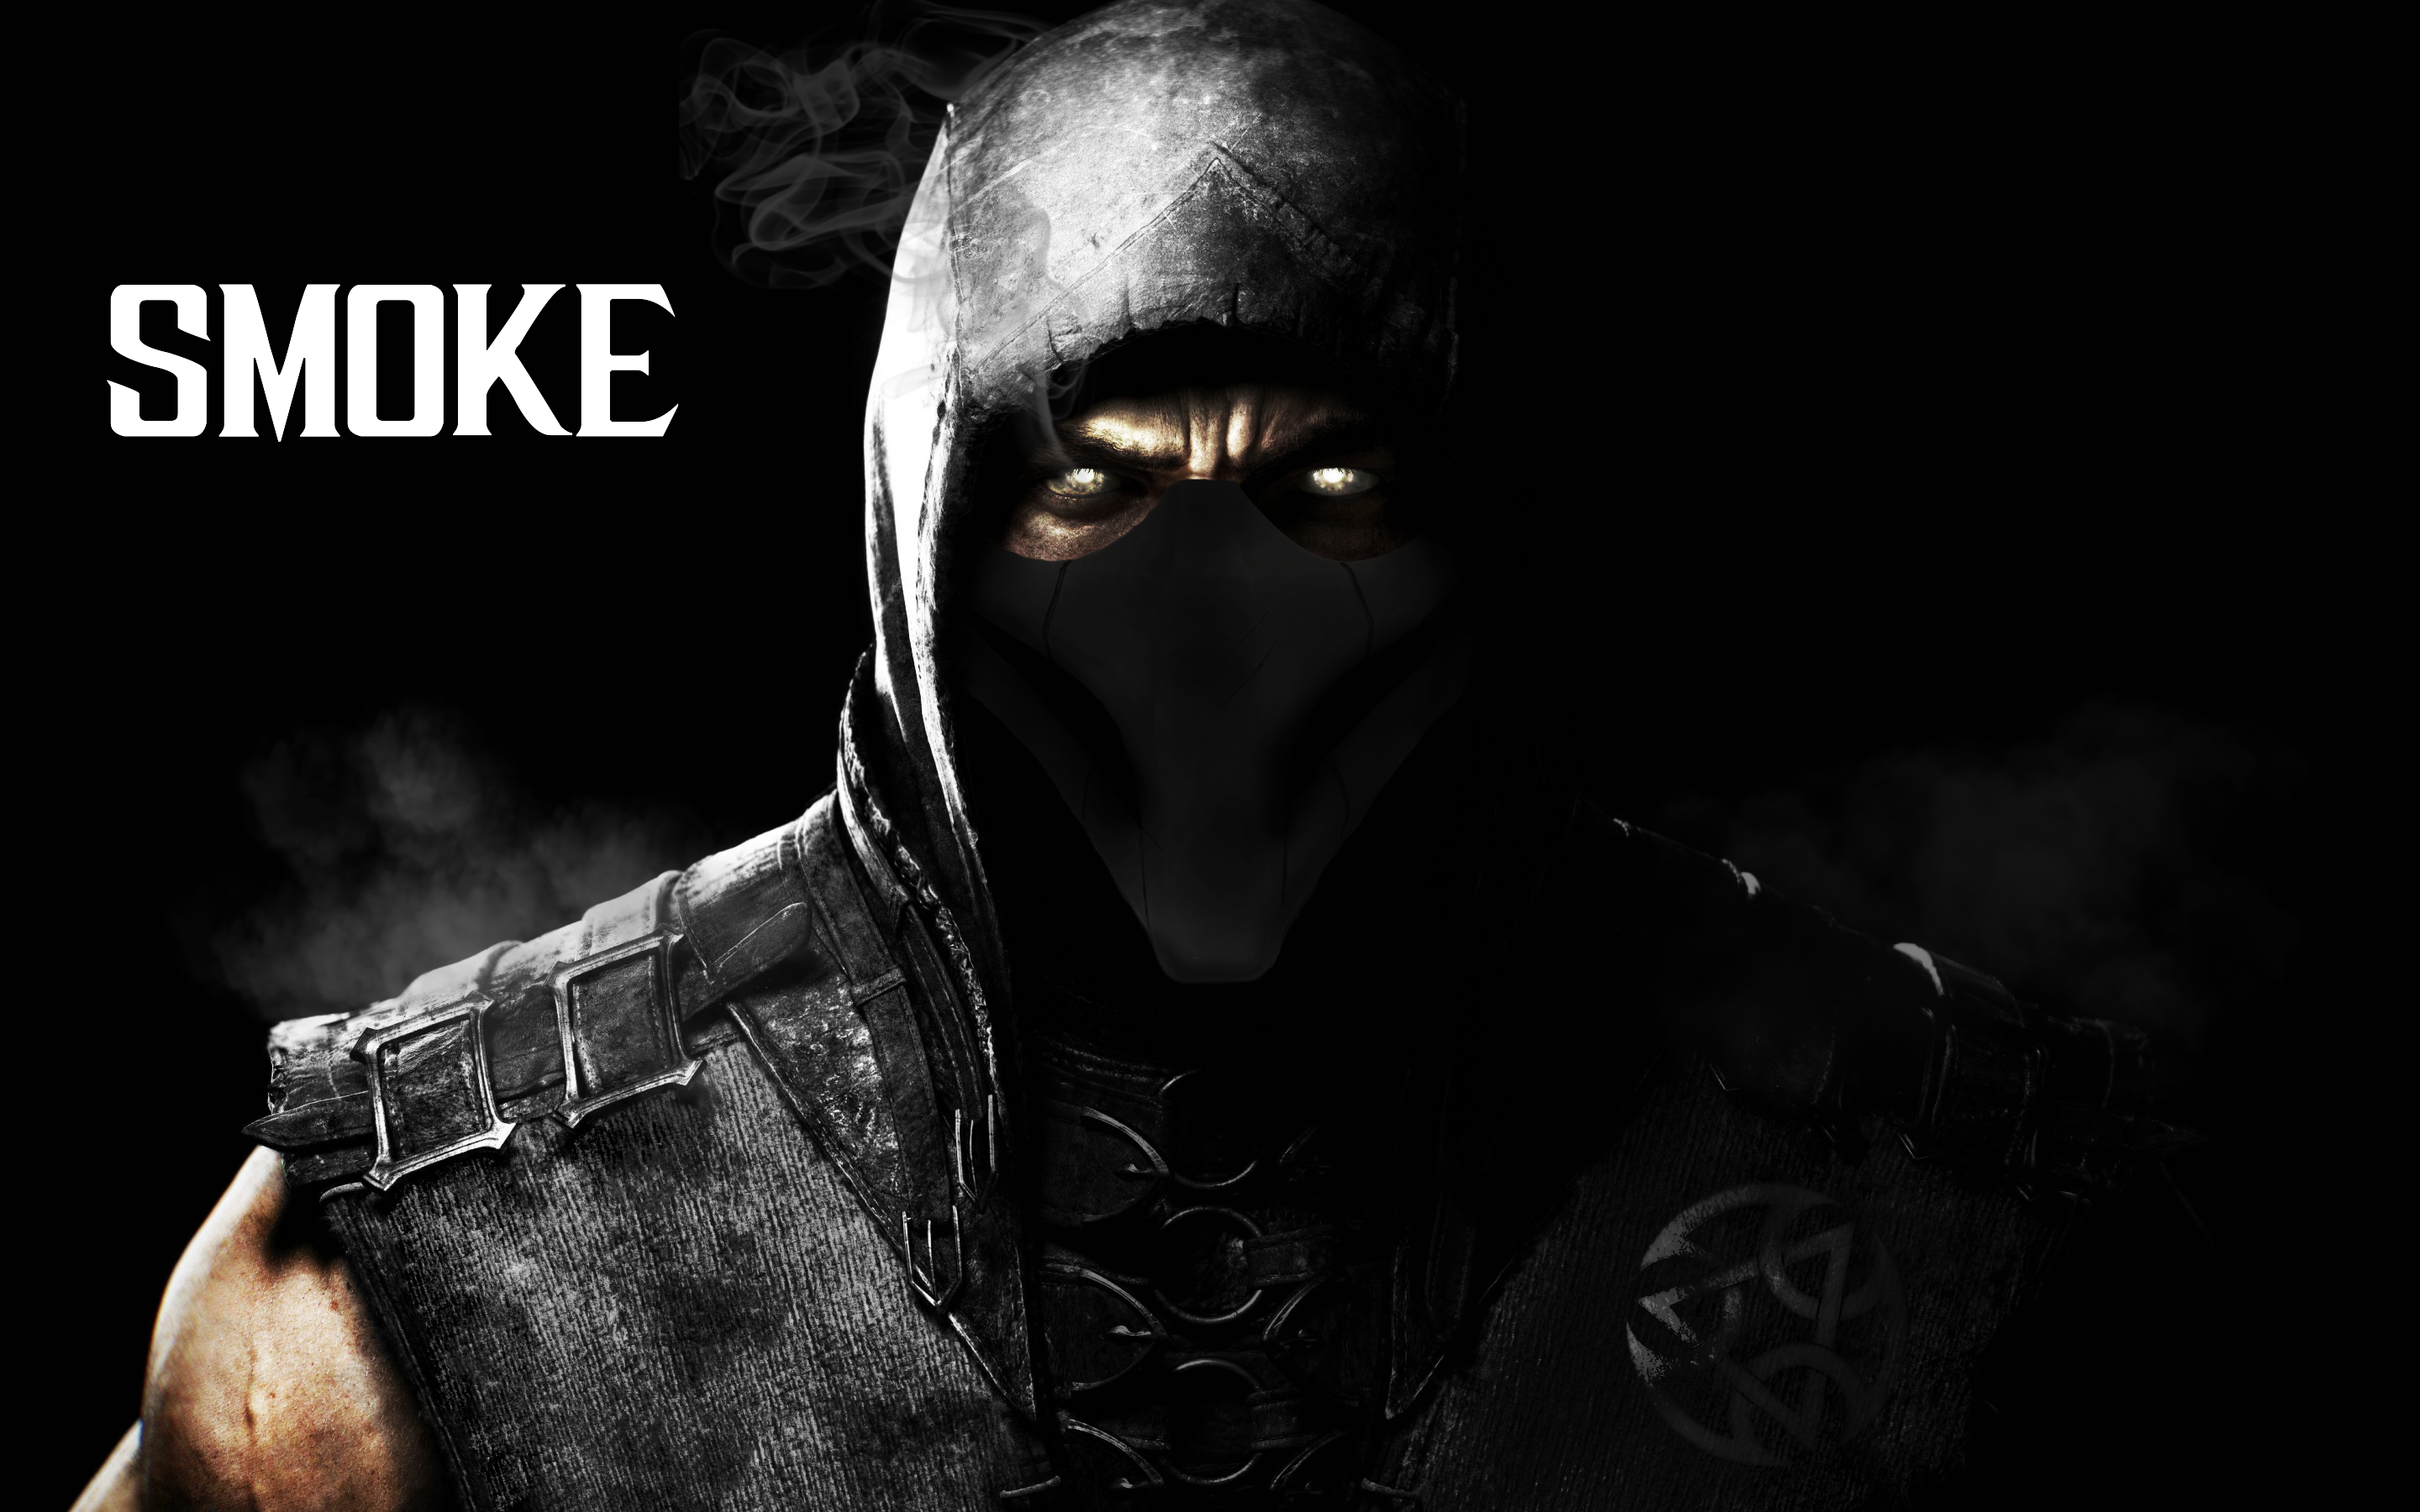 46 Mortal Kombat X Smoke Wallpaper On Wallpapersafari